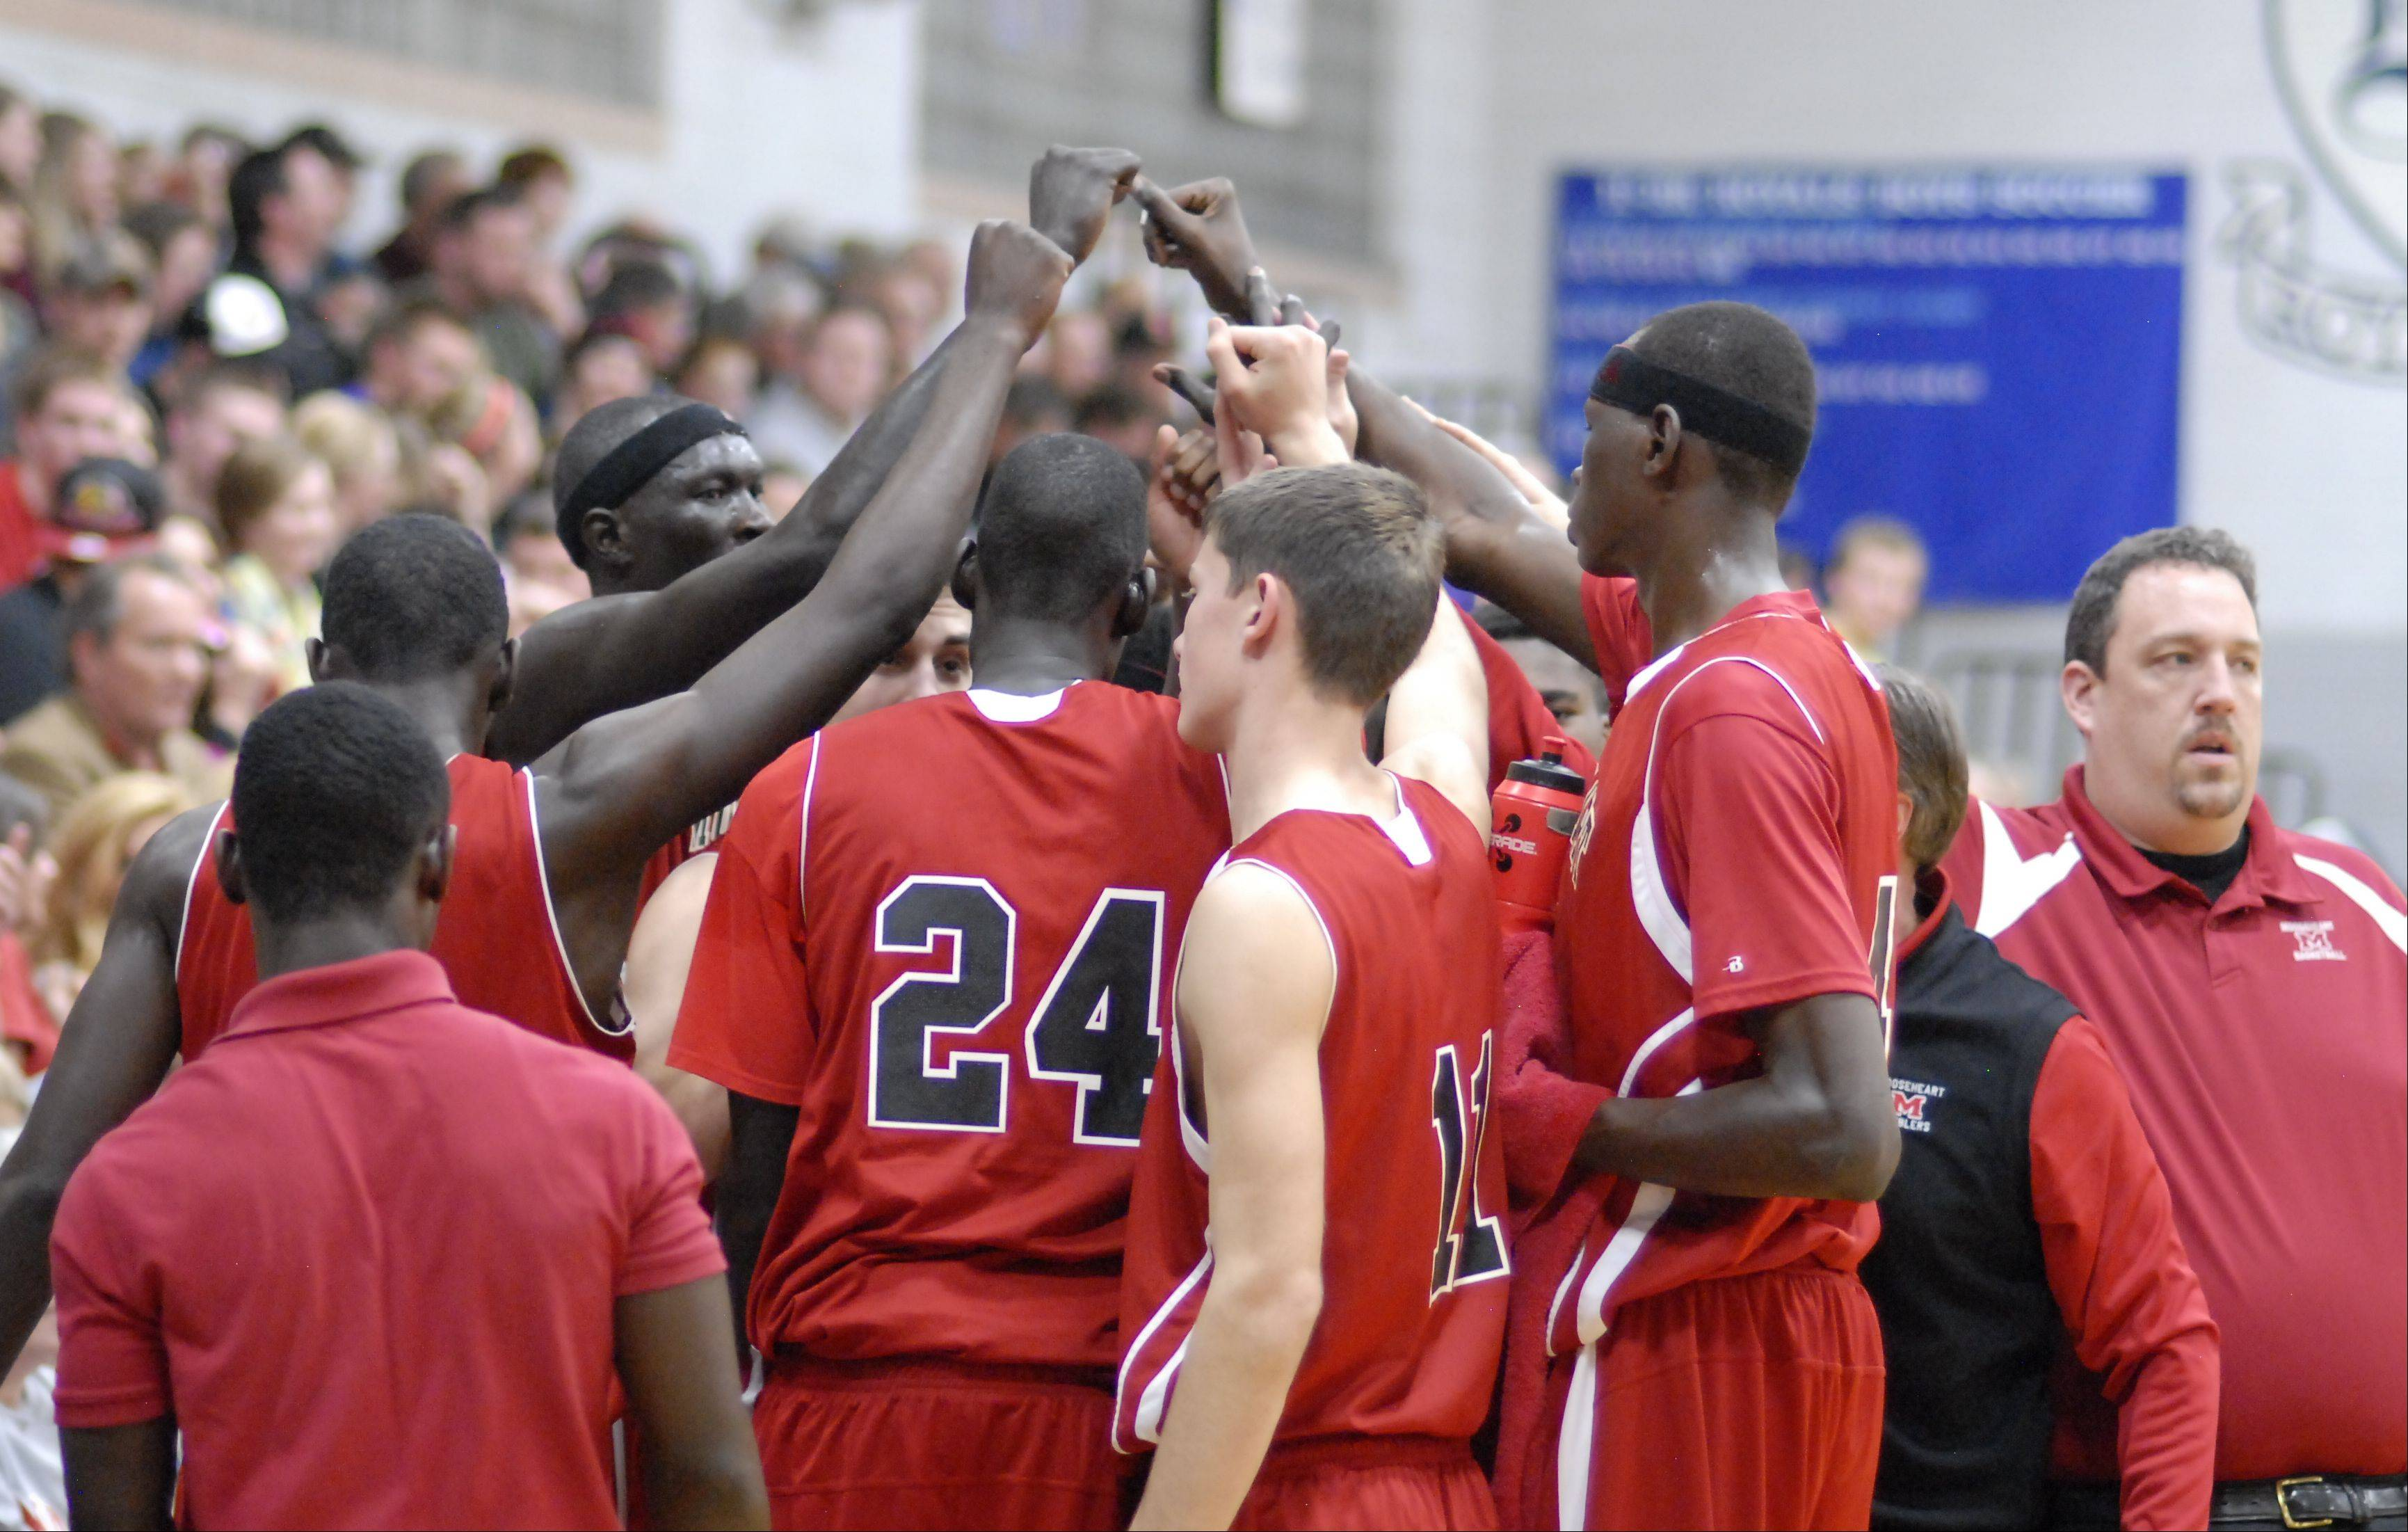 Images from the Mooseheart vs. Hinckley-Big Rock boys basketball game Wednesday, December 5, 2012.